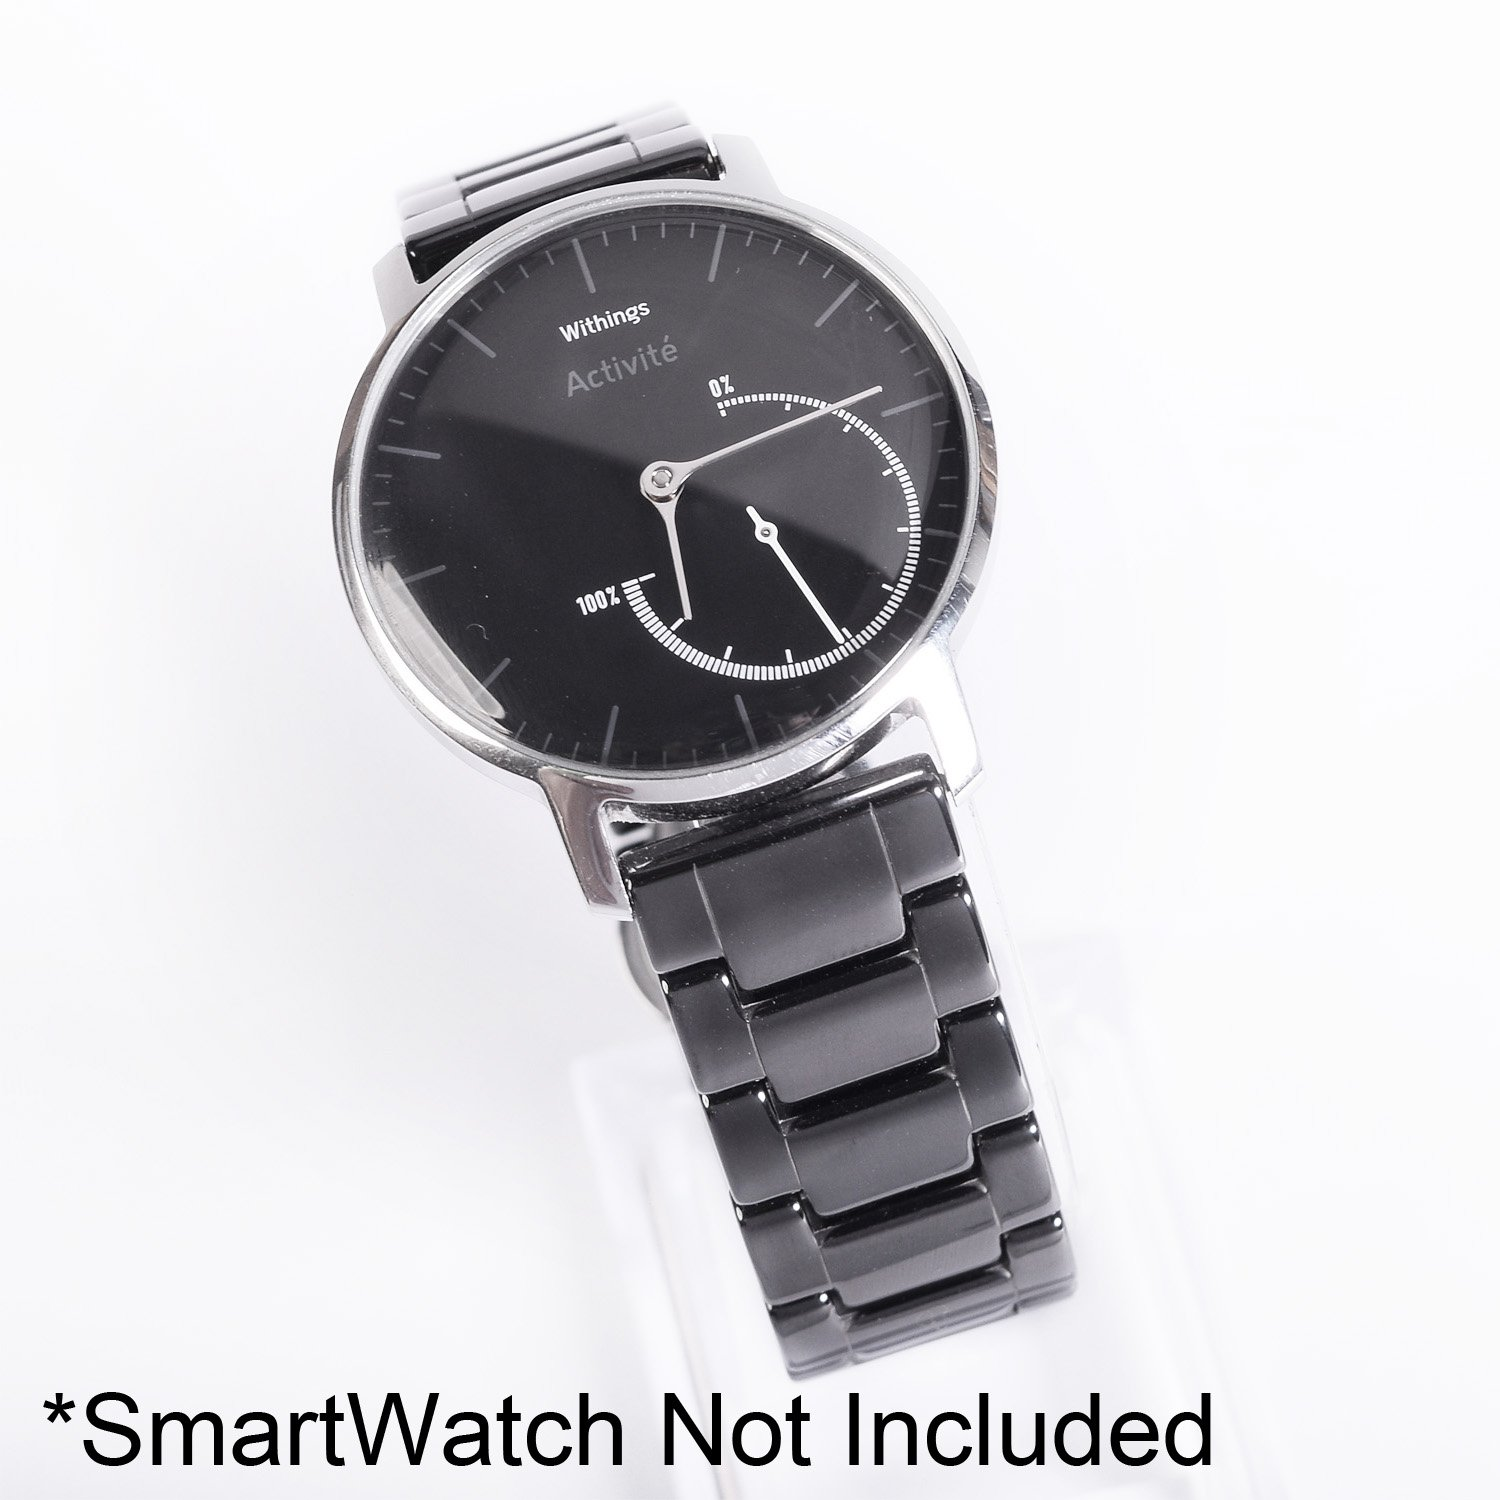 KR-NET 18mm Ceramic Watch Strap Band Bracelet Deluxe Smooth Wristband for Withings Activité Pop Steel HR (Black)